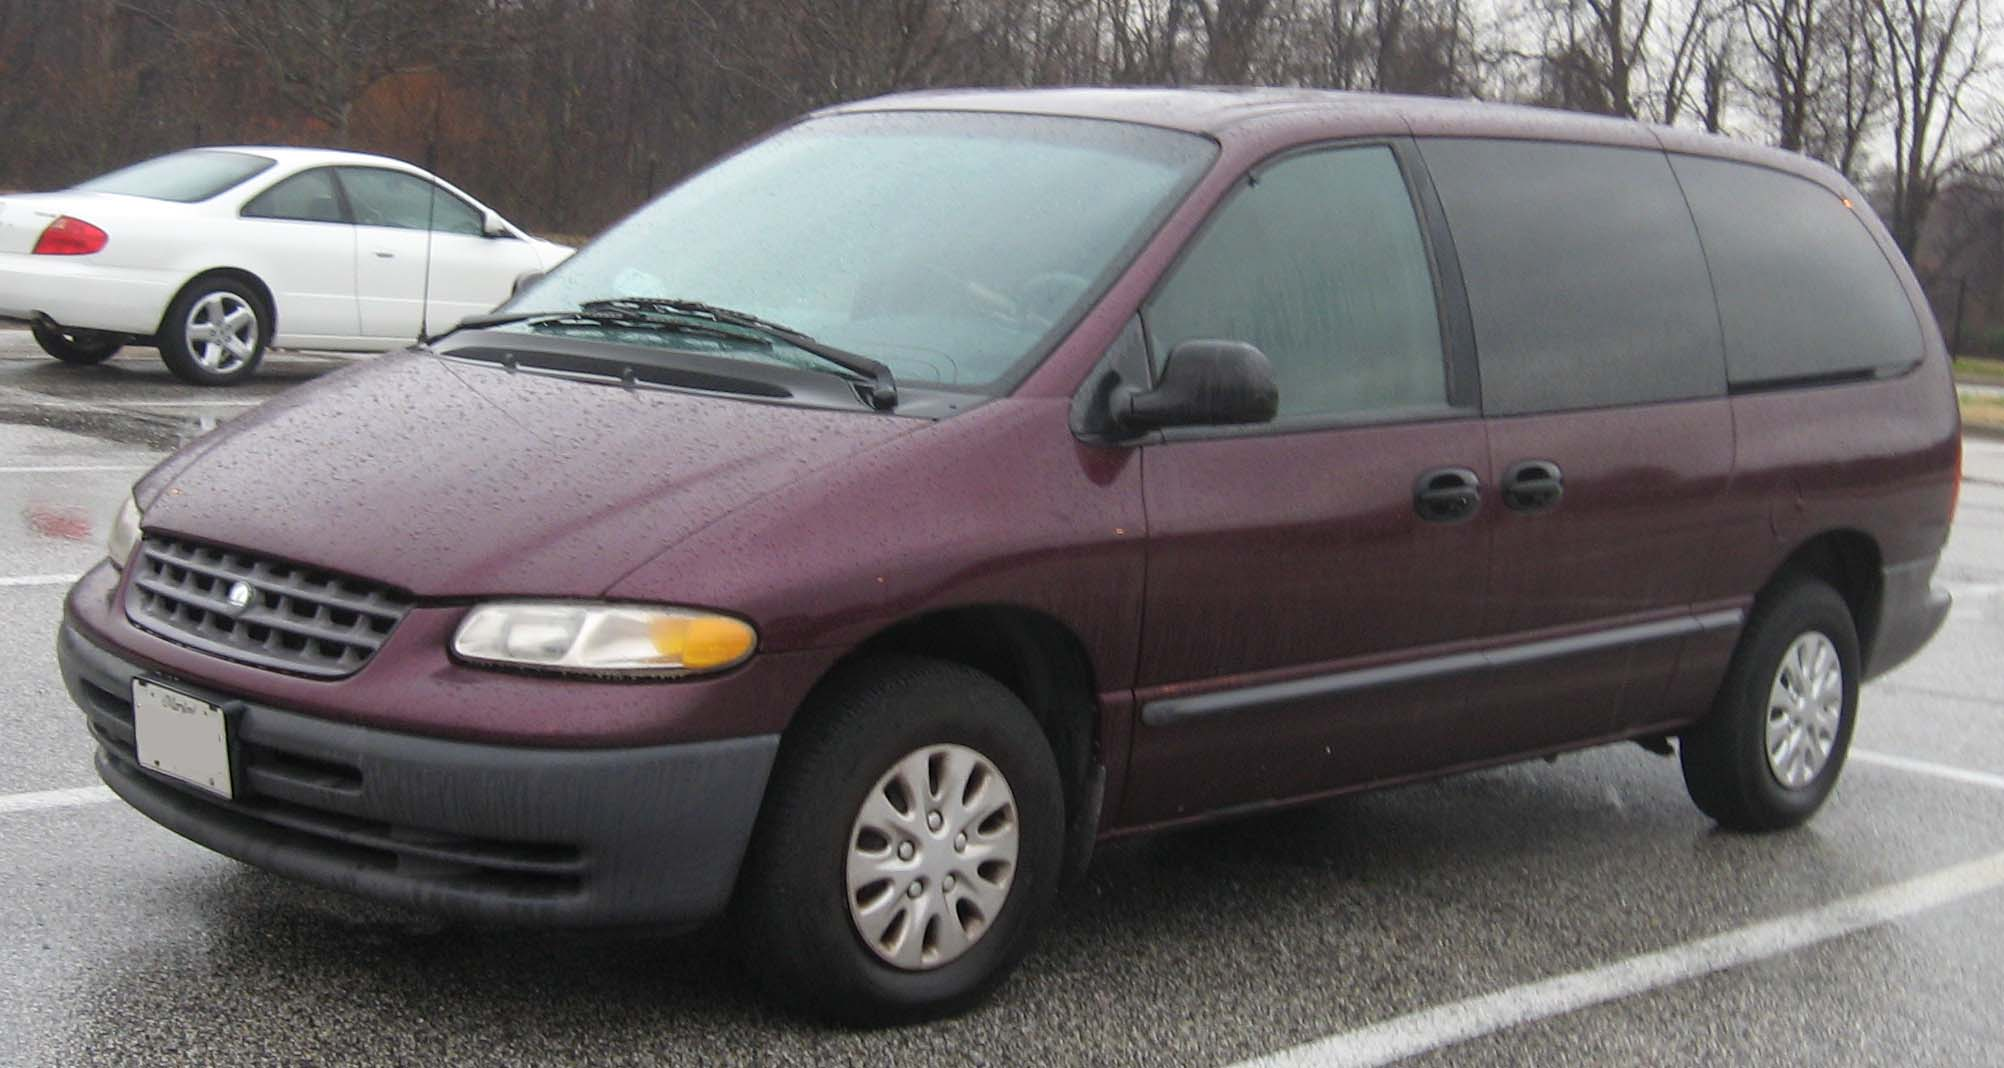 2000 Plymouth Grand Voyager Photos Informations Articles Breeze Wiring Diagram 7